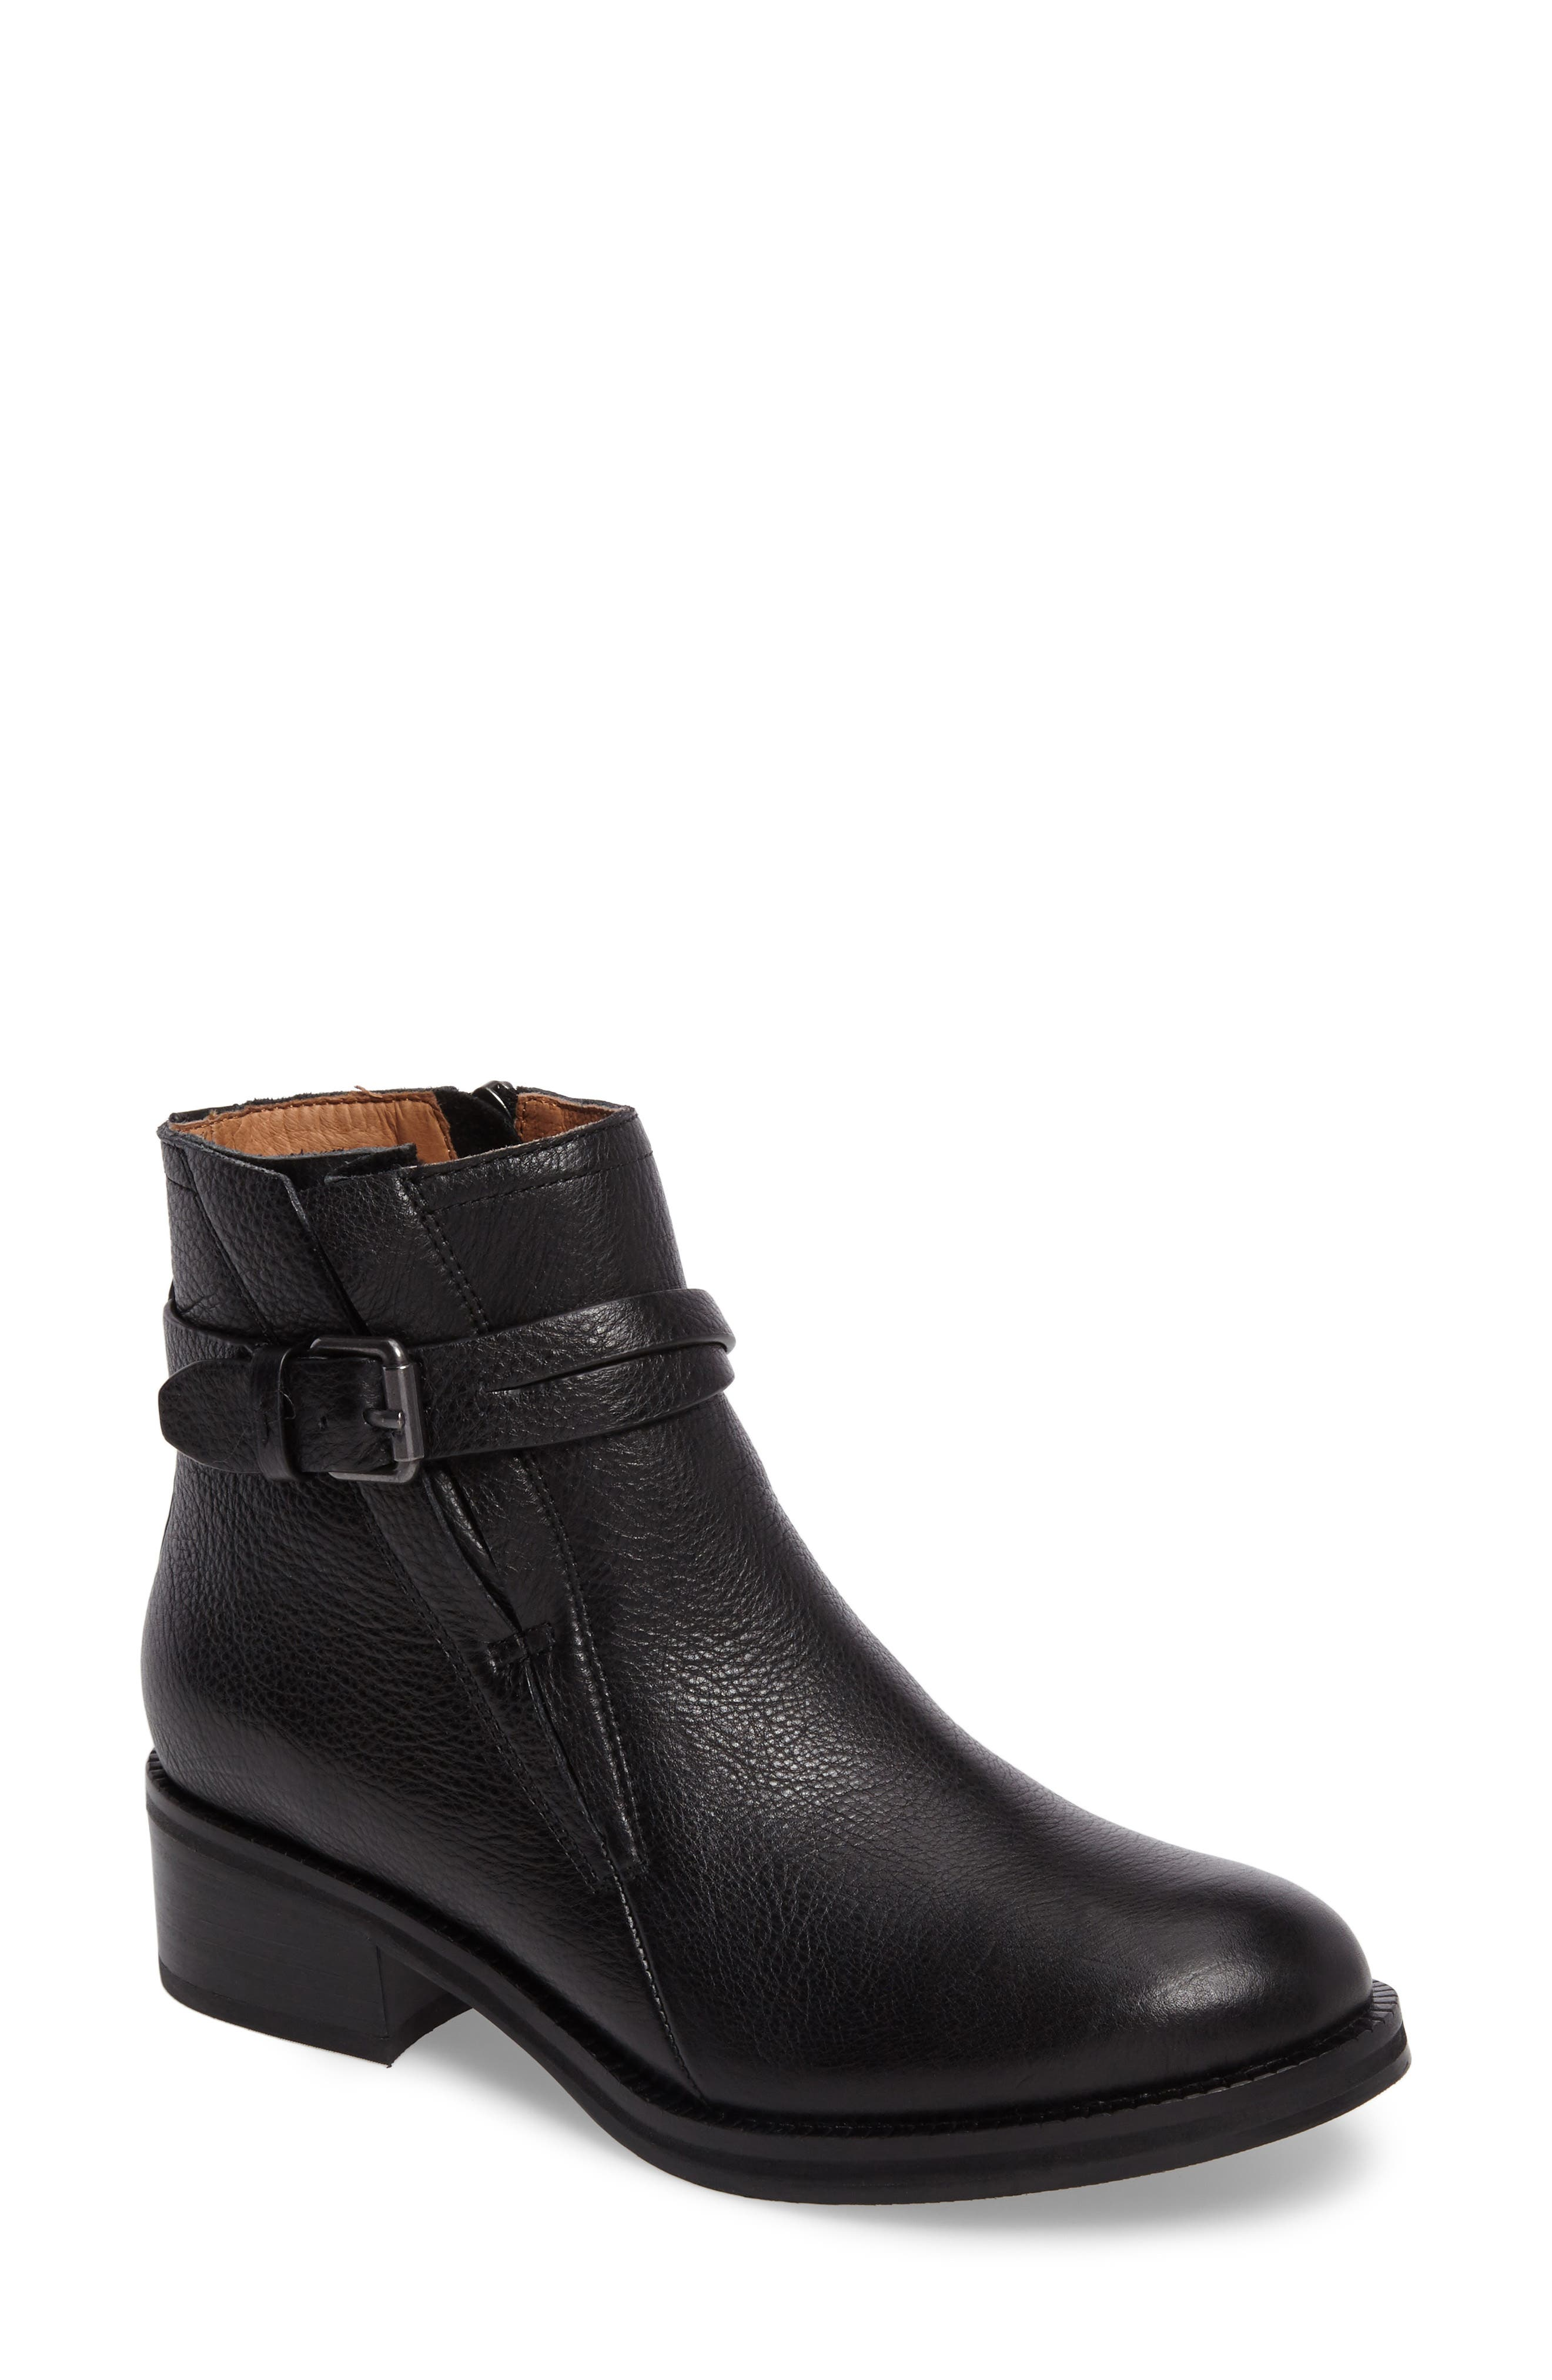 GENTLE SOULS BY KENNETH COLE, Percy Bootie, Main thumbnail 1, color, BLACK LEATHER